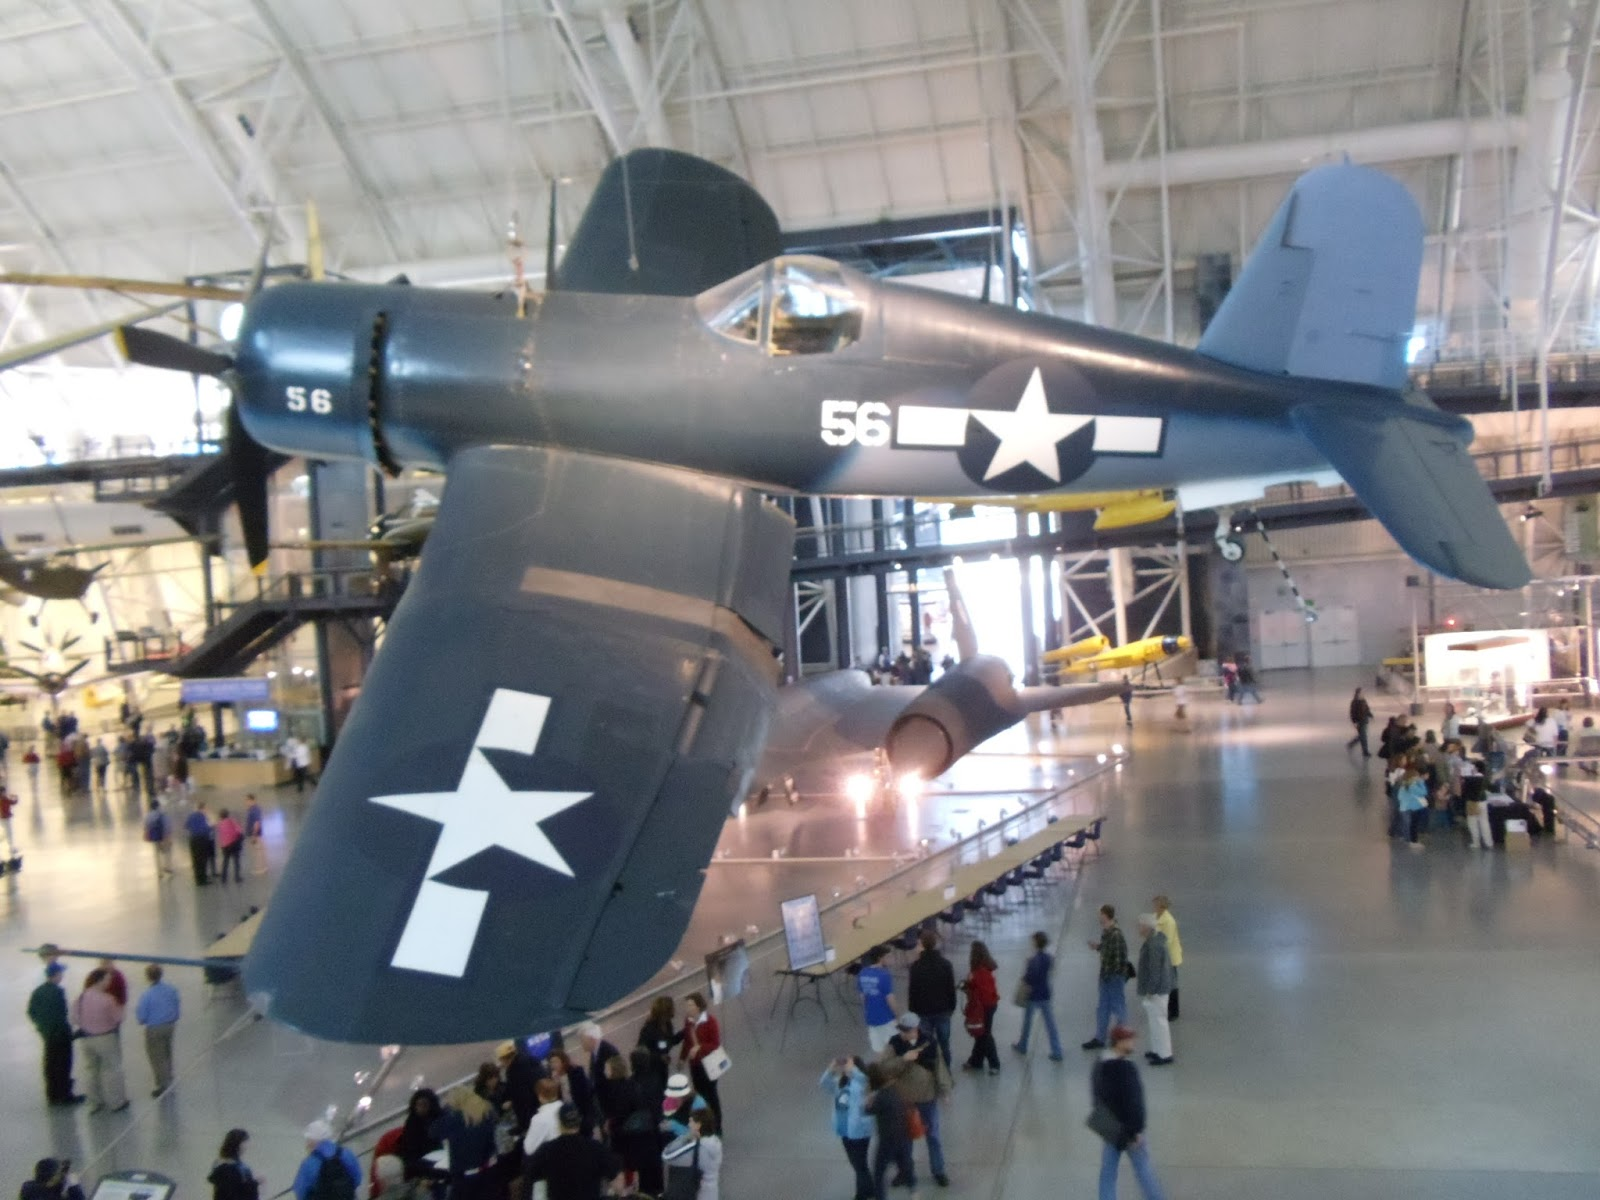 Smithsonian Air and Space Museum in Chantilly, Va.